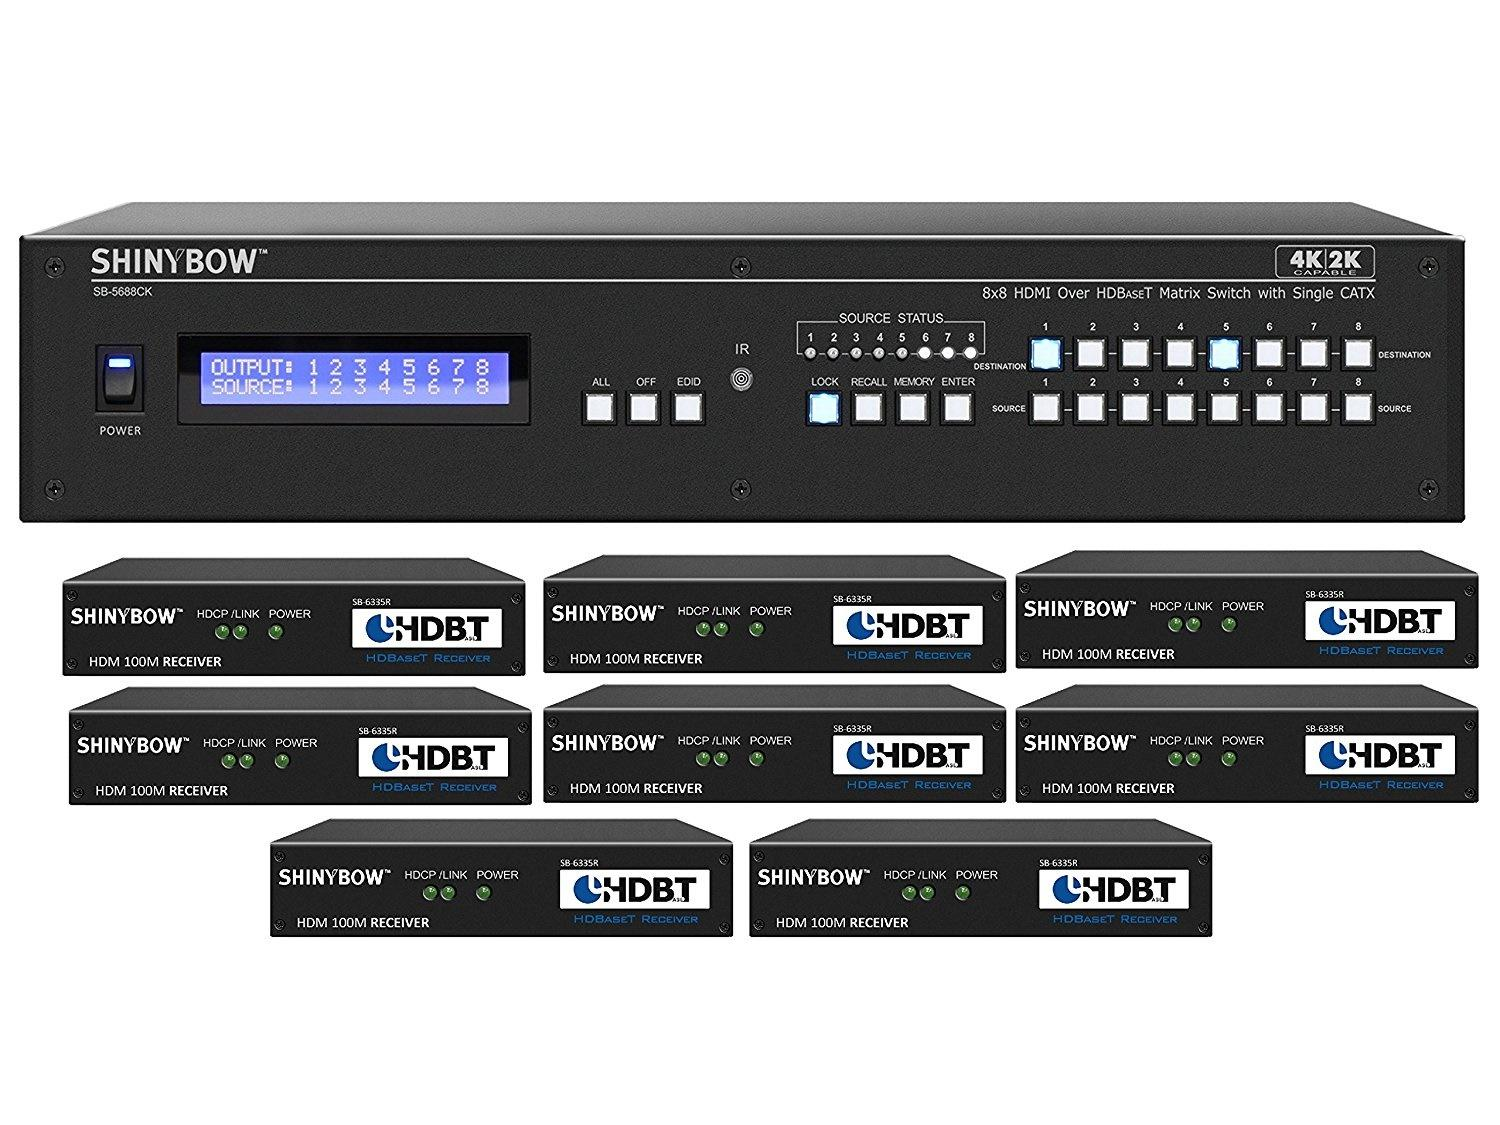 Shinybow SB-5688CK-8x35R-Kit 8x8 4K UHD HDBaseT Matrix Switcher Kit/1 x SB-5688CK Switch/8 x SB-6335R Receivers